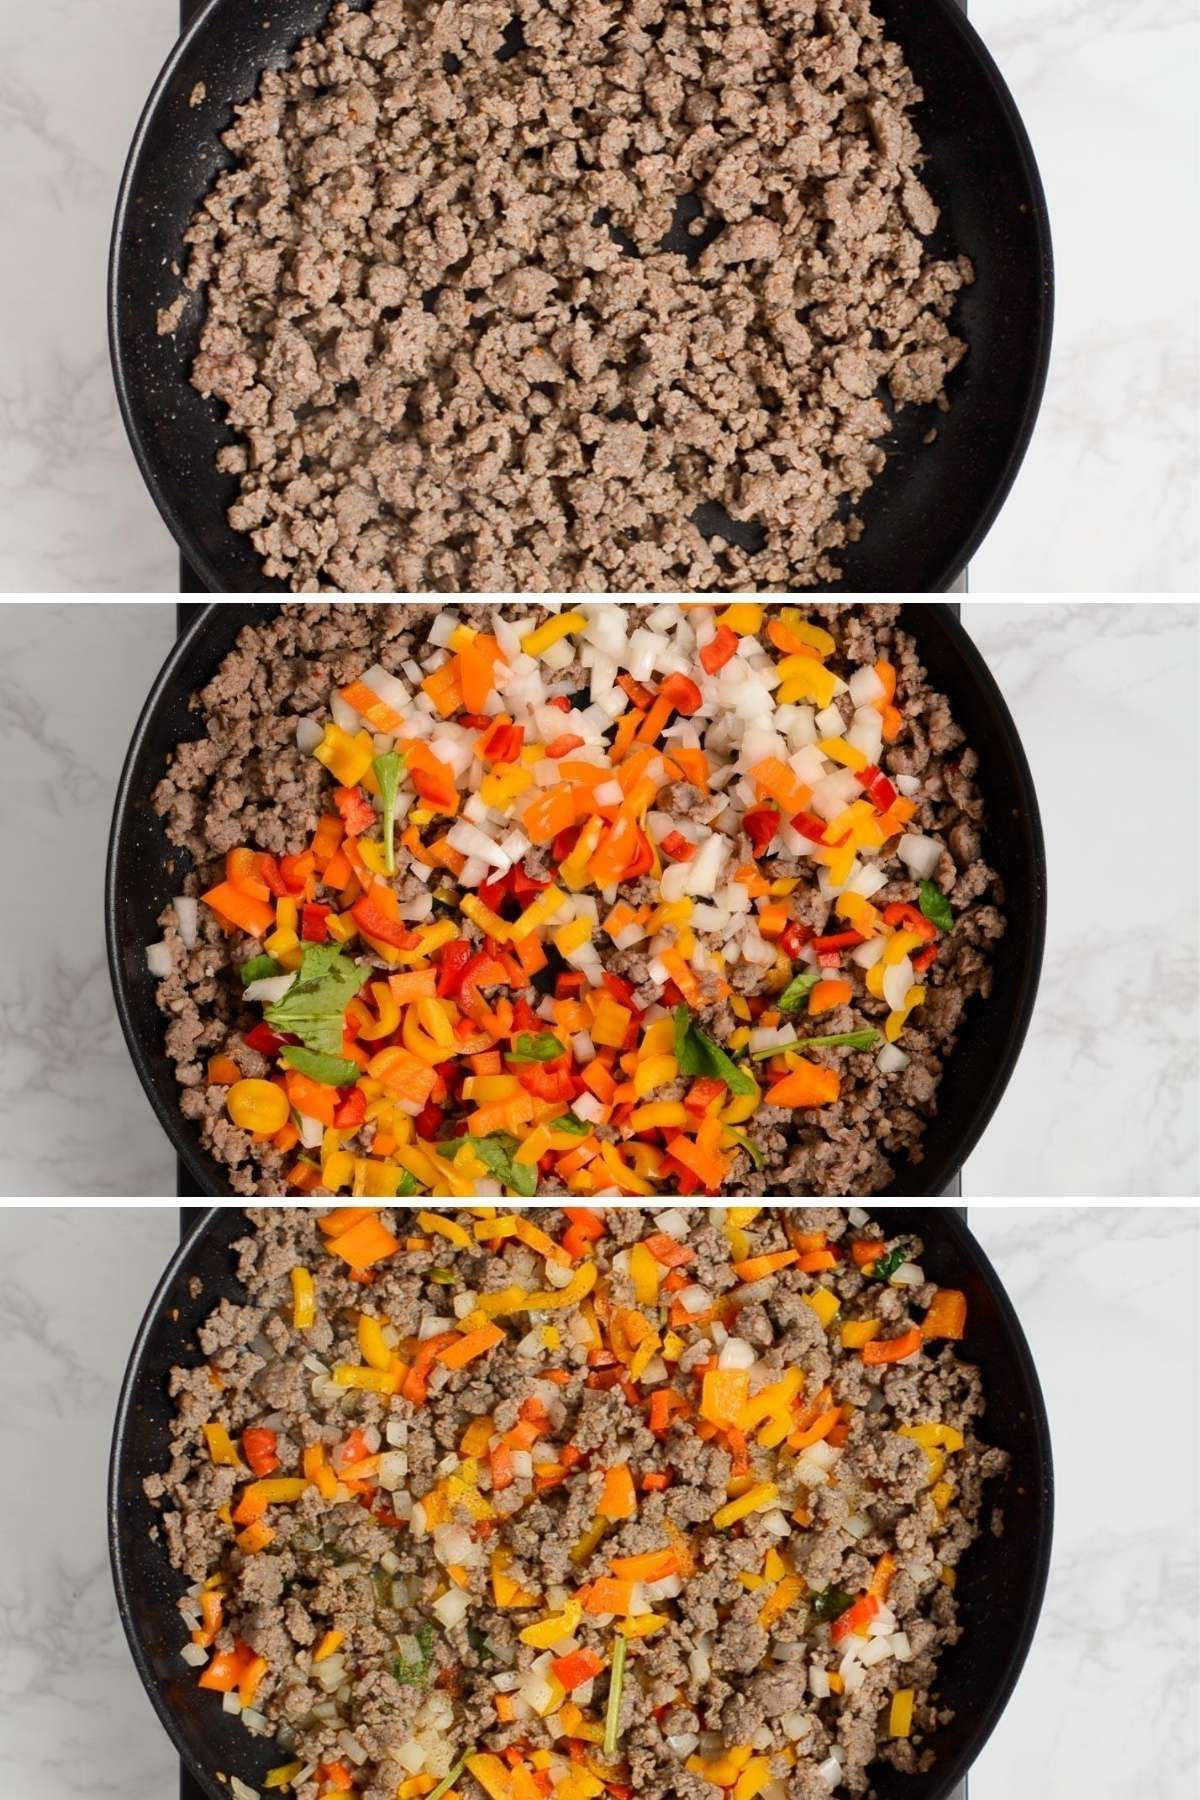 Steps to make a sausage breakfast skillet - brown sausage, add chopped pepper and onions, and fry.